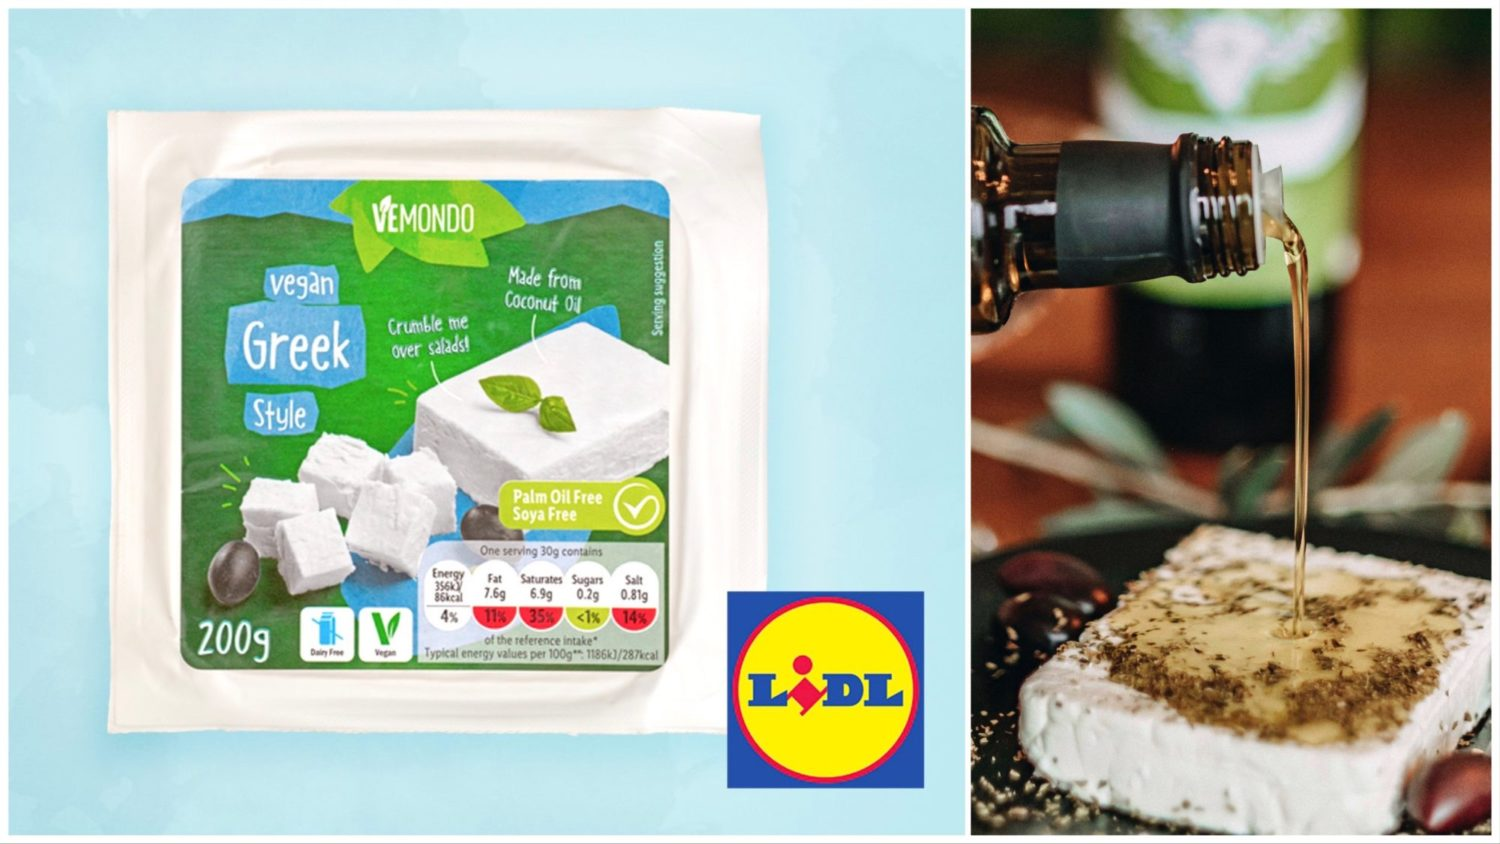 Vegan at Lidl: 3 New Budget-Friendly Cheeses